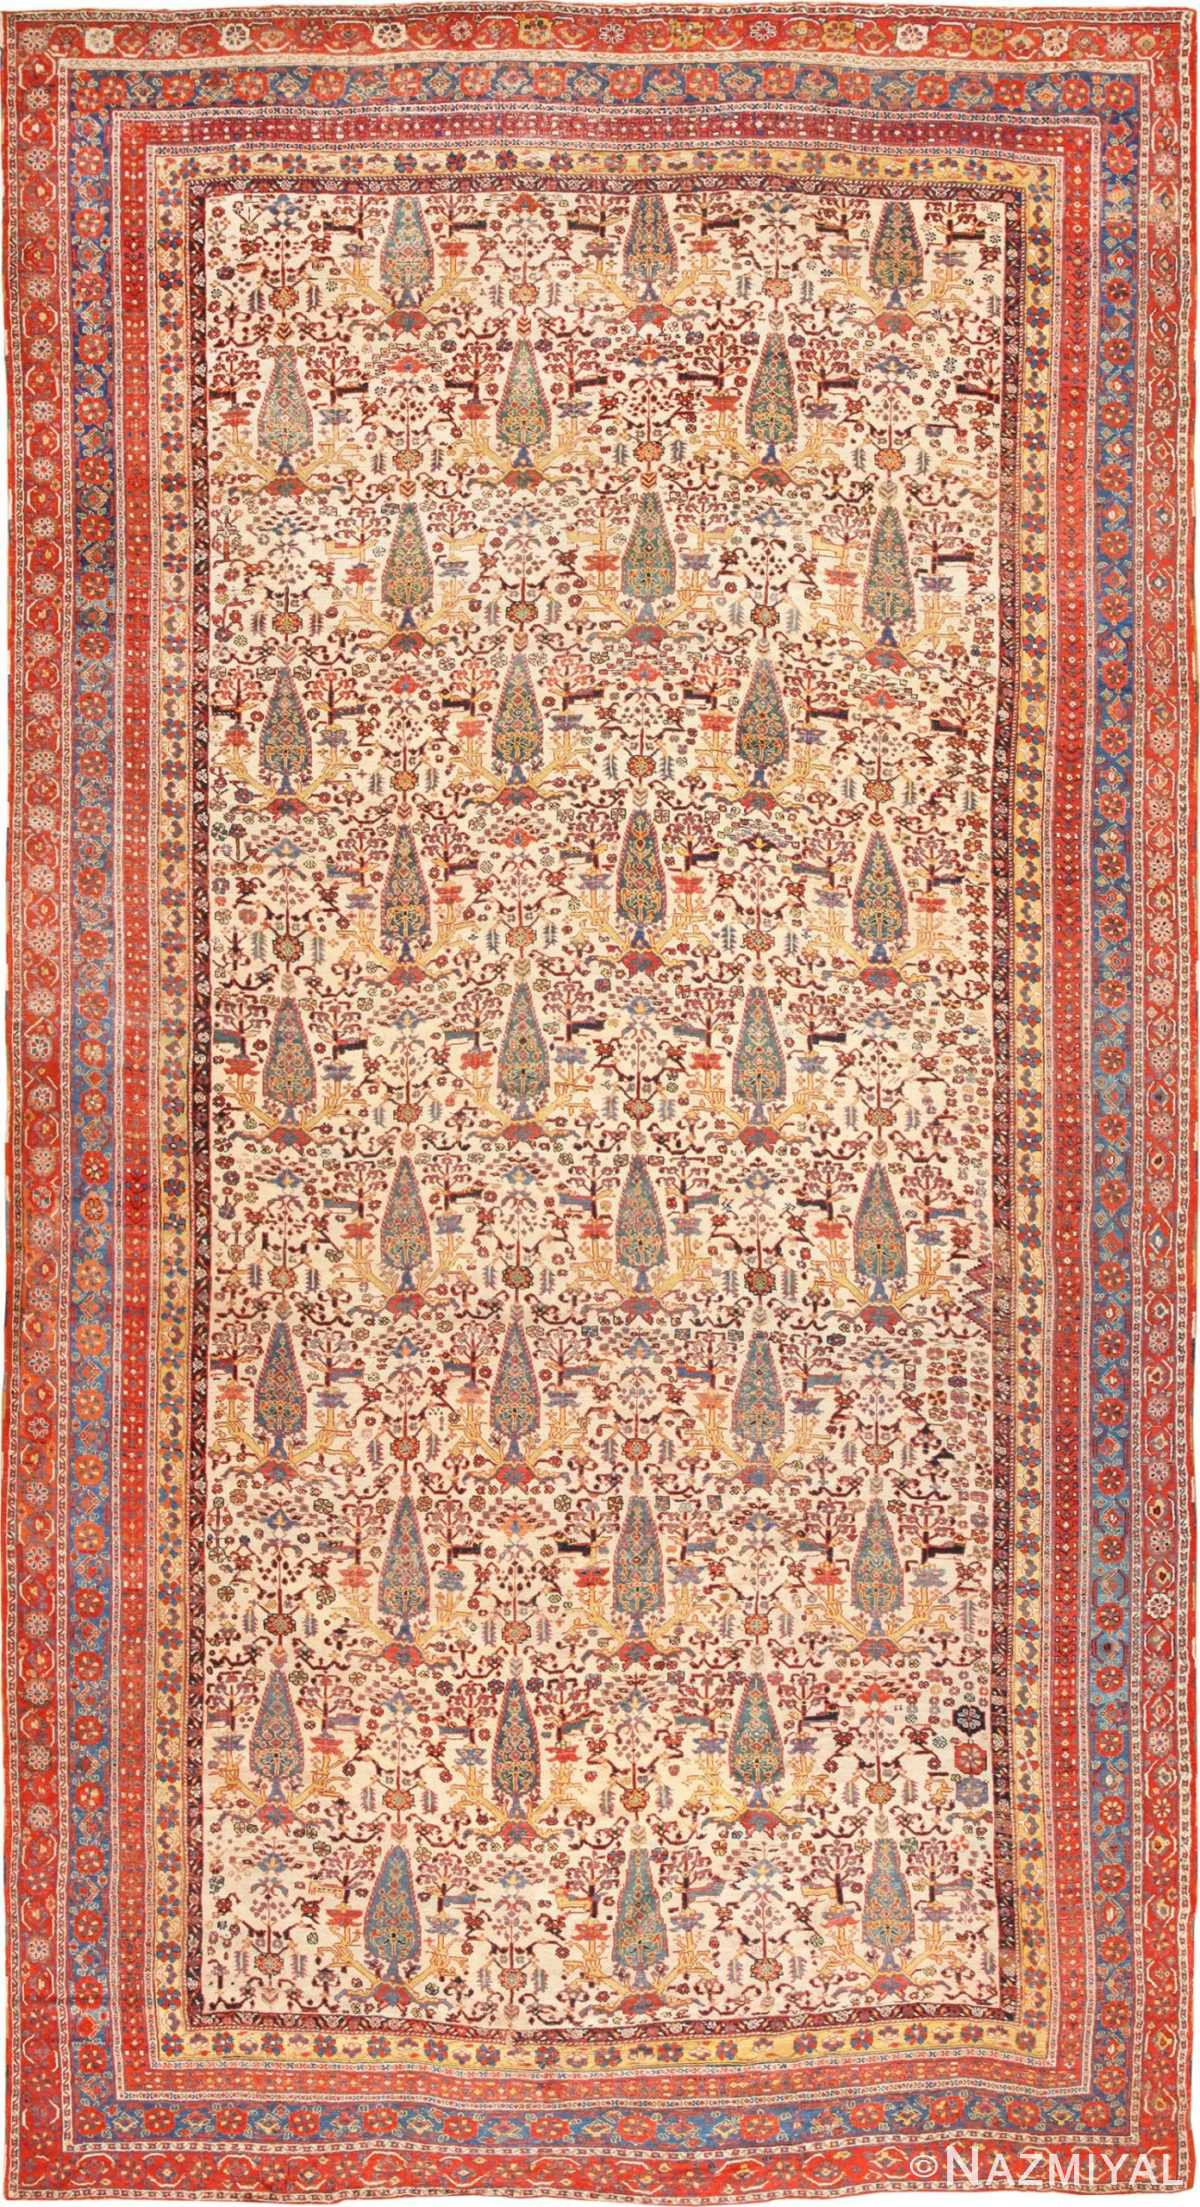 Large Oversized Antique Persian Tribal Qashqai Rug 50651 Nazmiyal